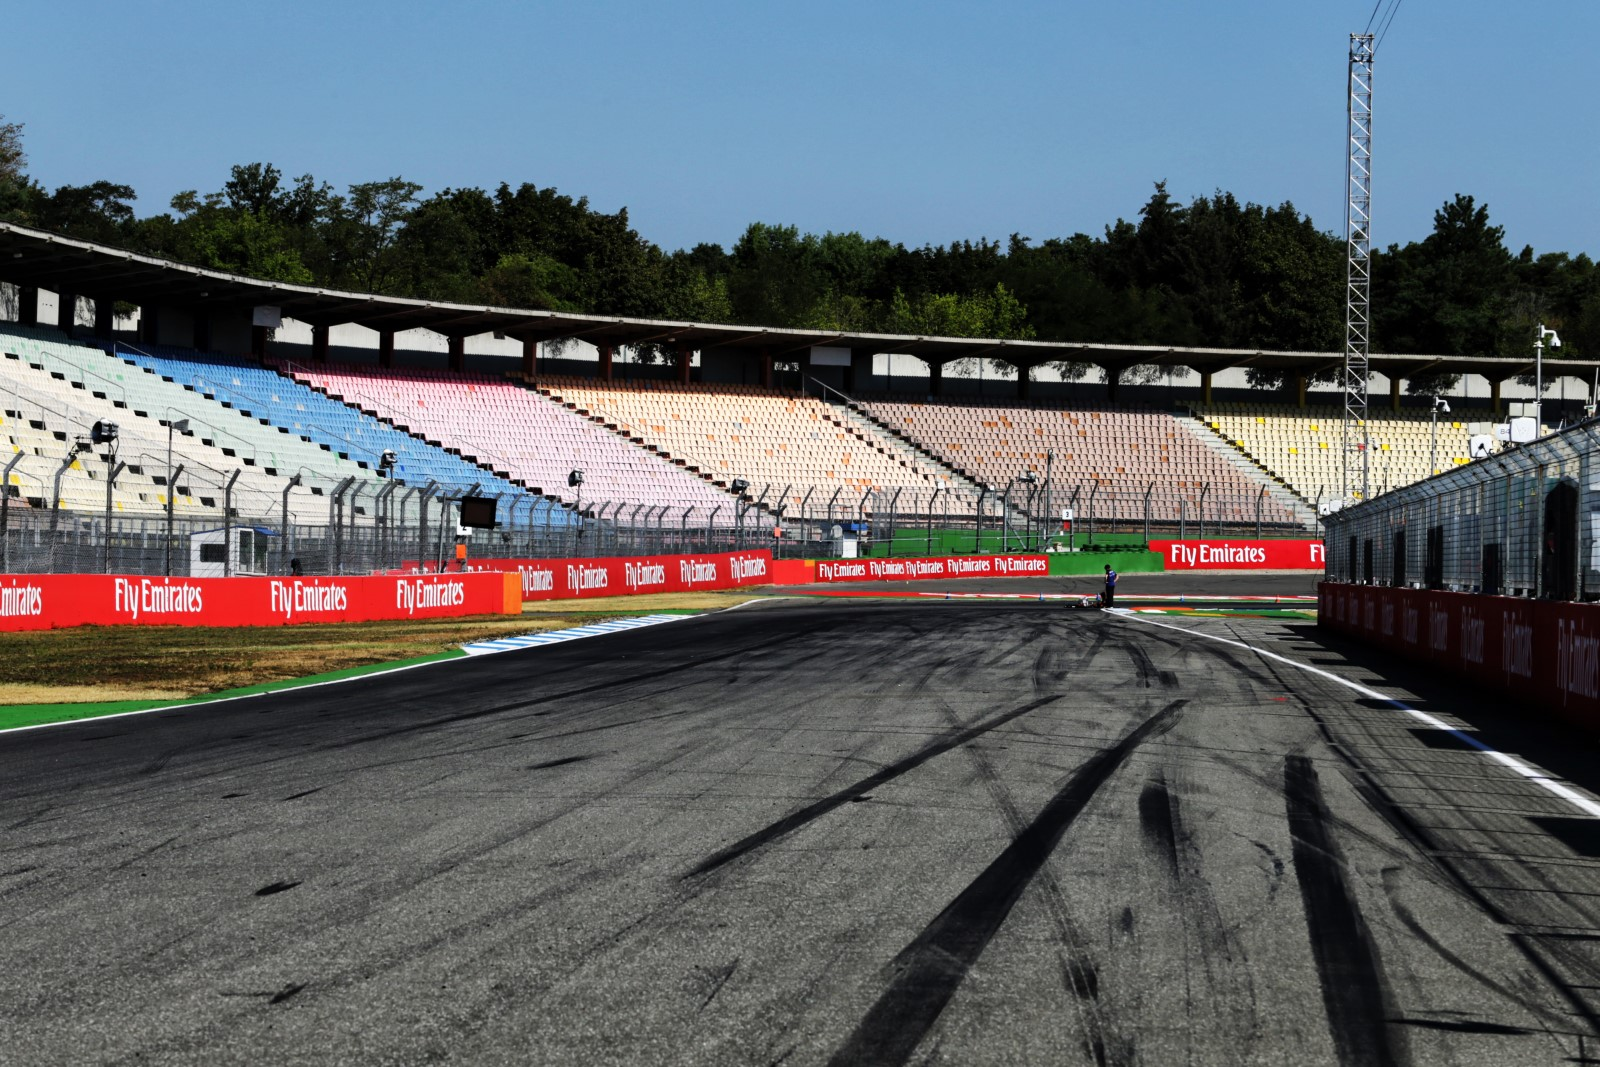 F1 confirms Nurburgring, Portimao and Imola on 2020 calendar